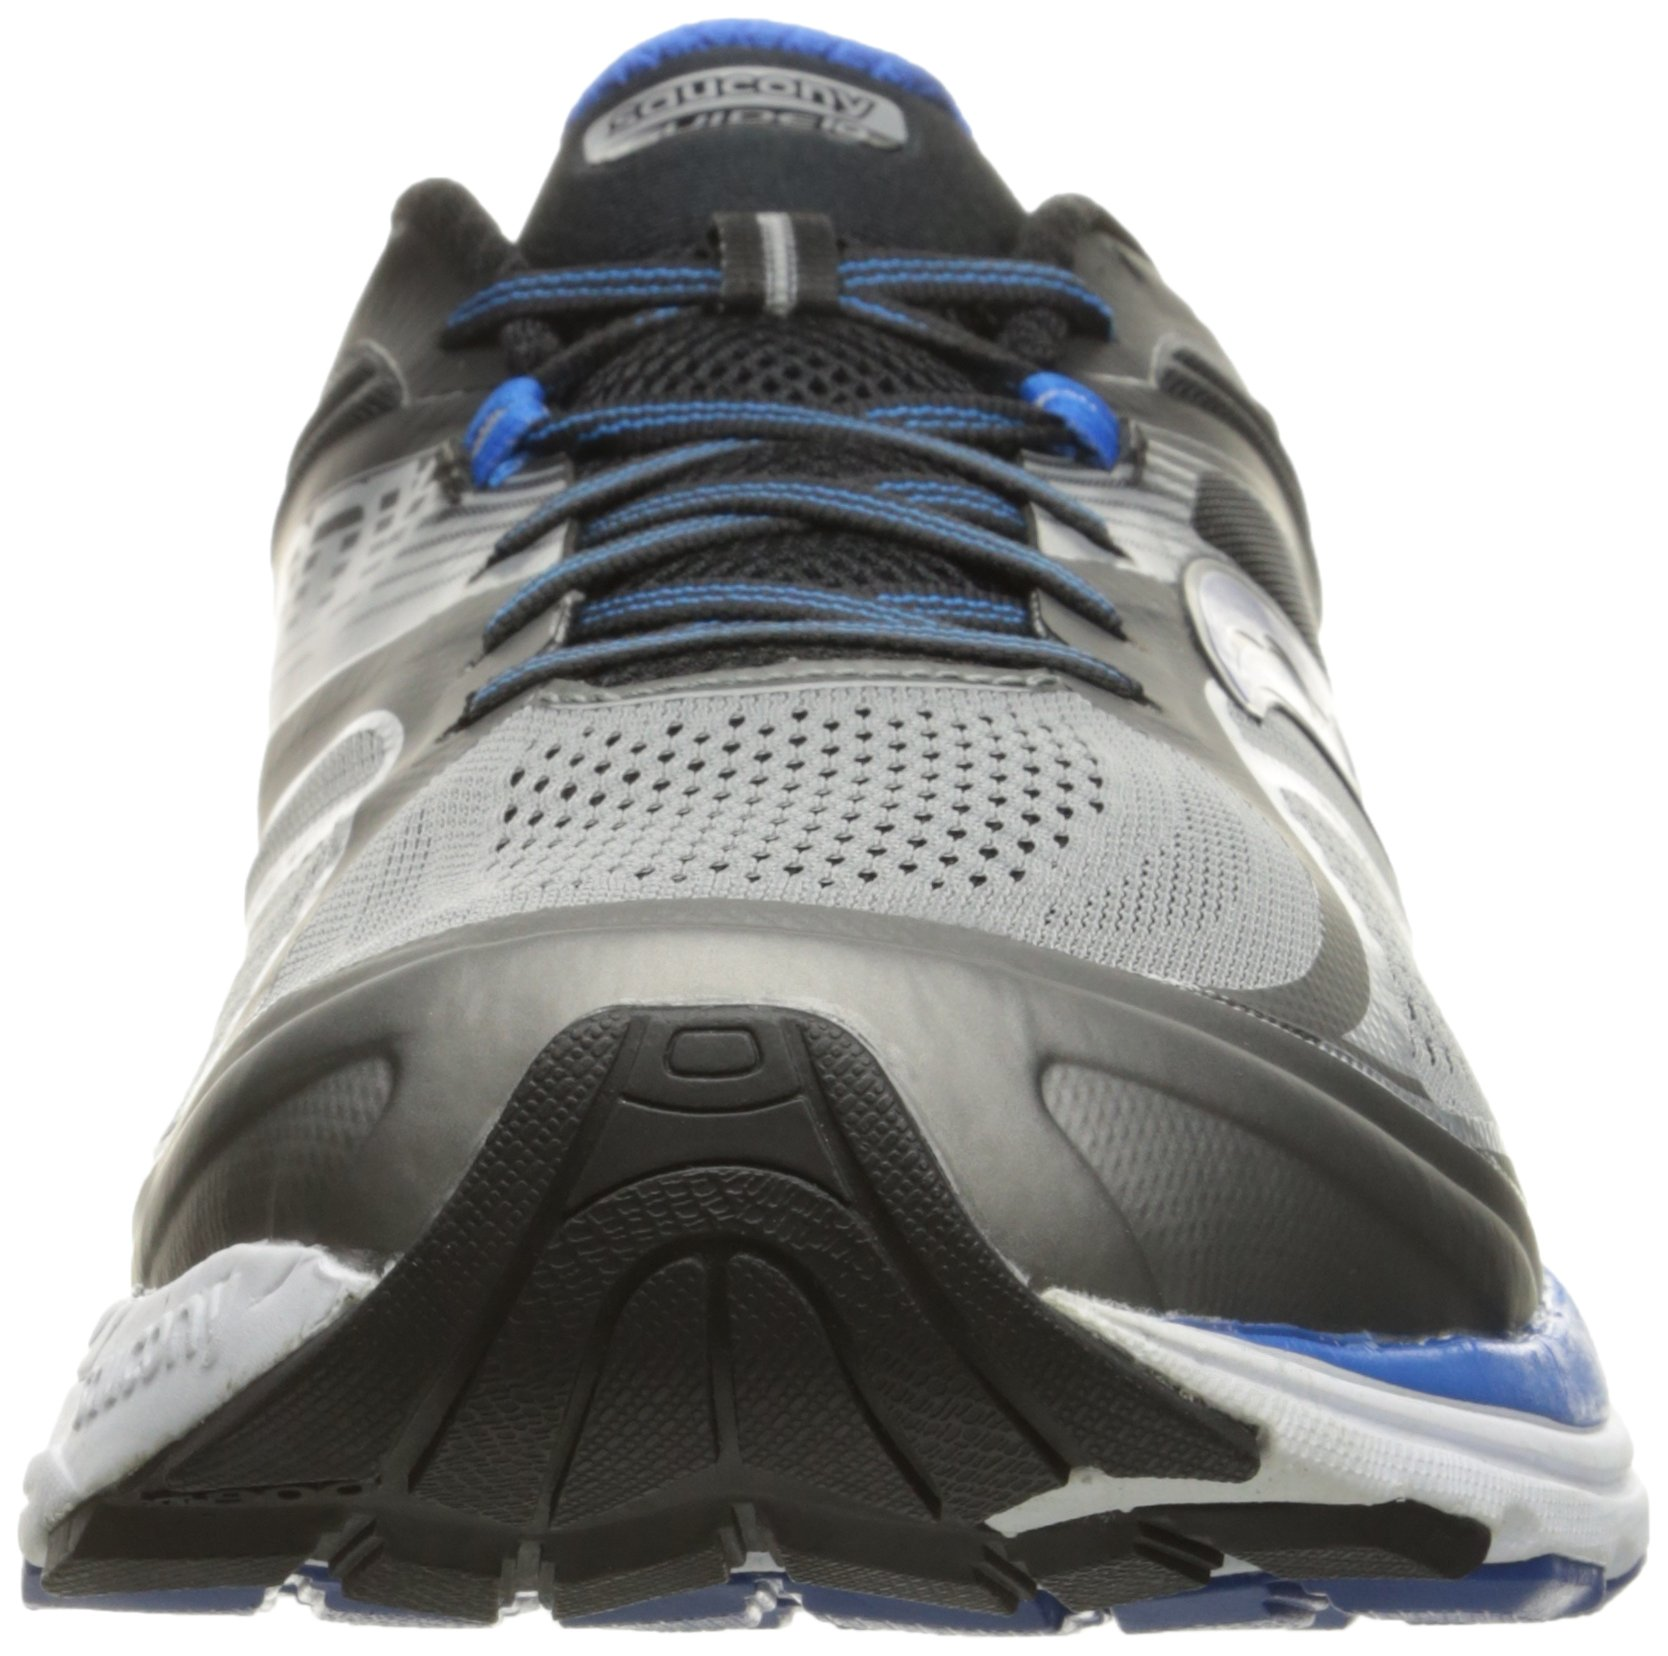 Saucony Men's Guide 10 Running Shoes, Grey Black, 14 D(M) US by Saucony (Image #4)